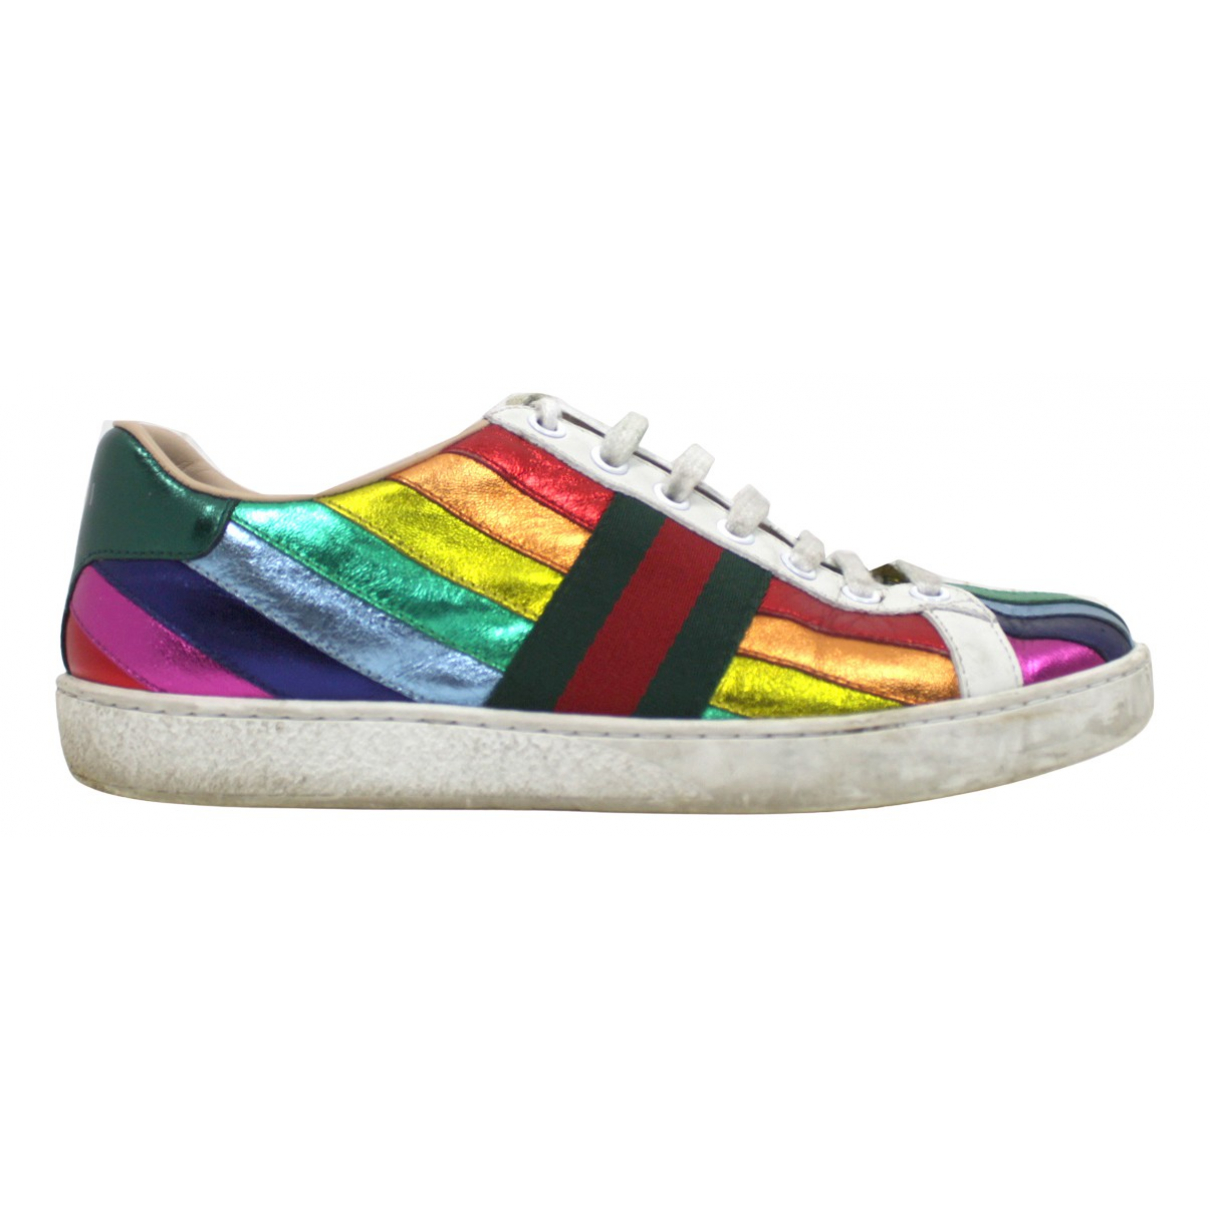 Gucci N Multicolour Leather Trainers for Women 36.5 EU